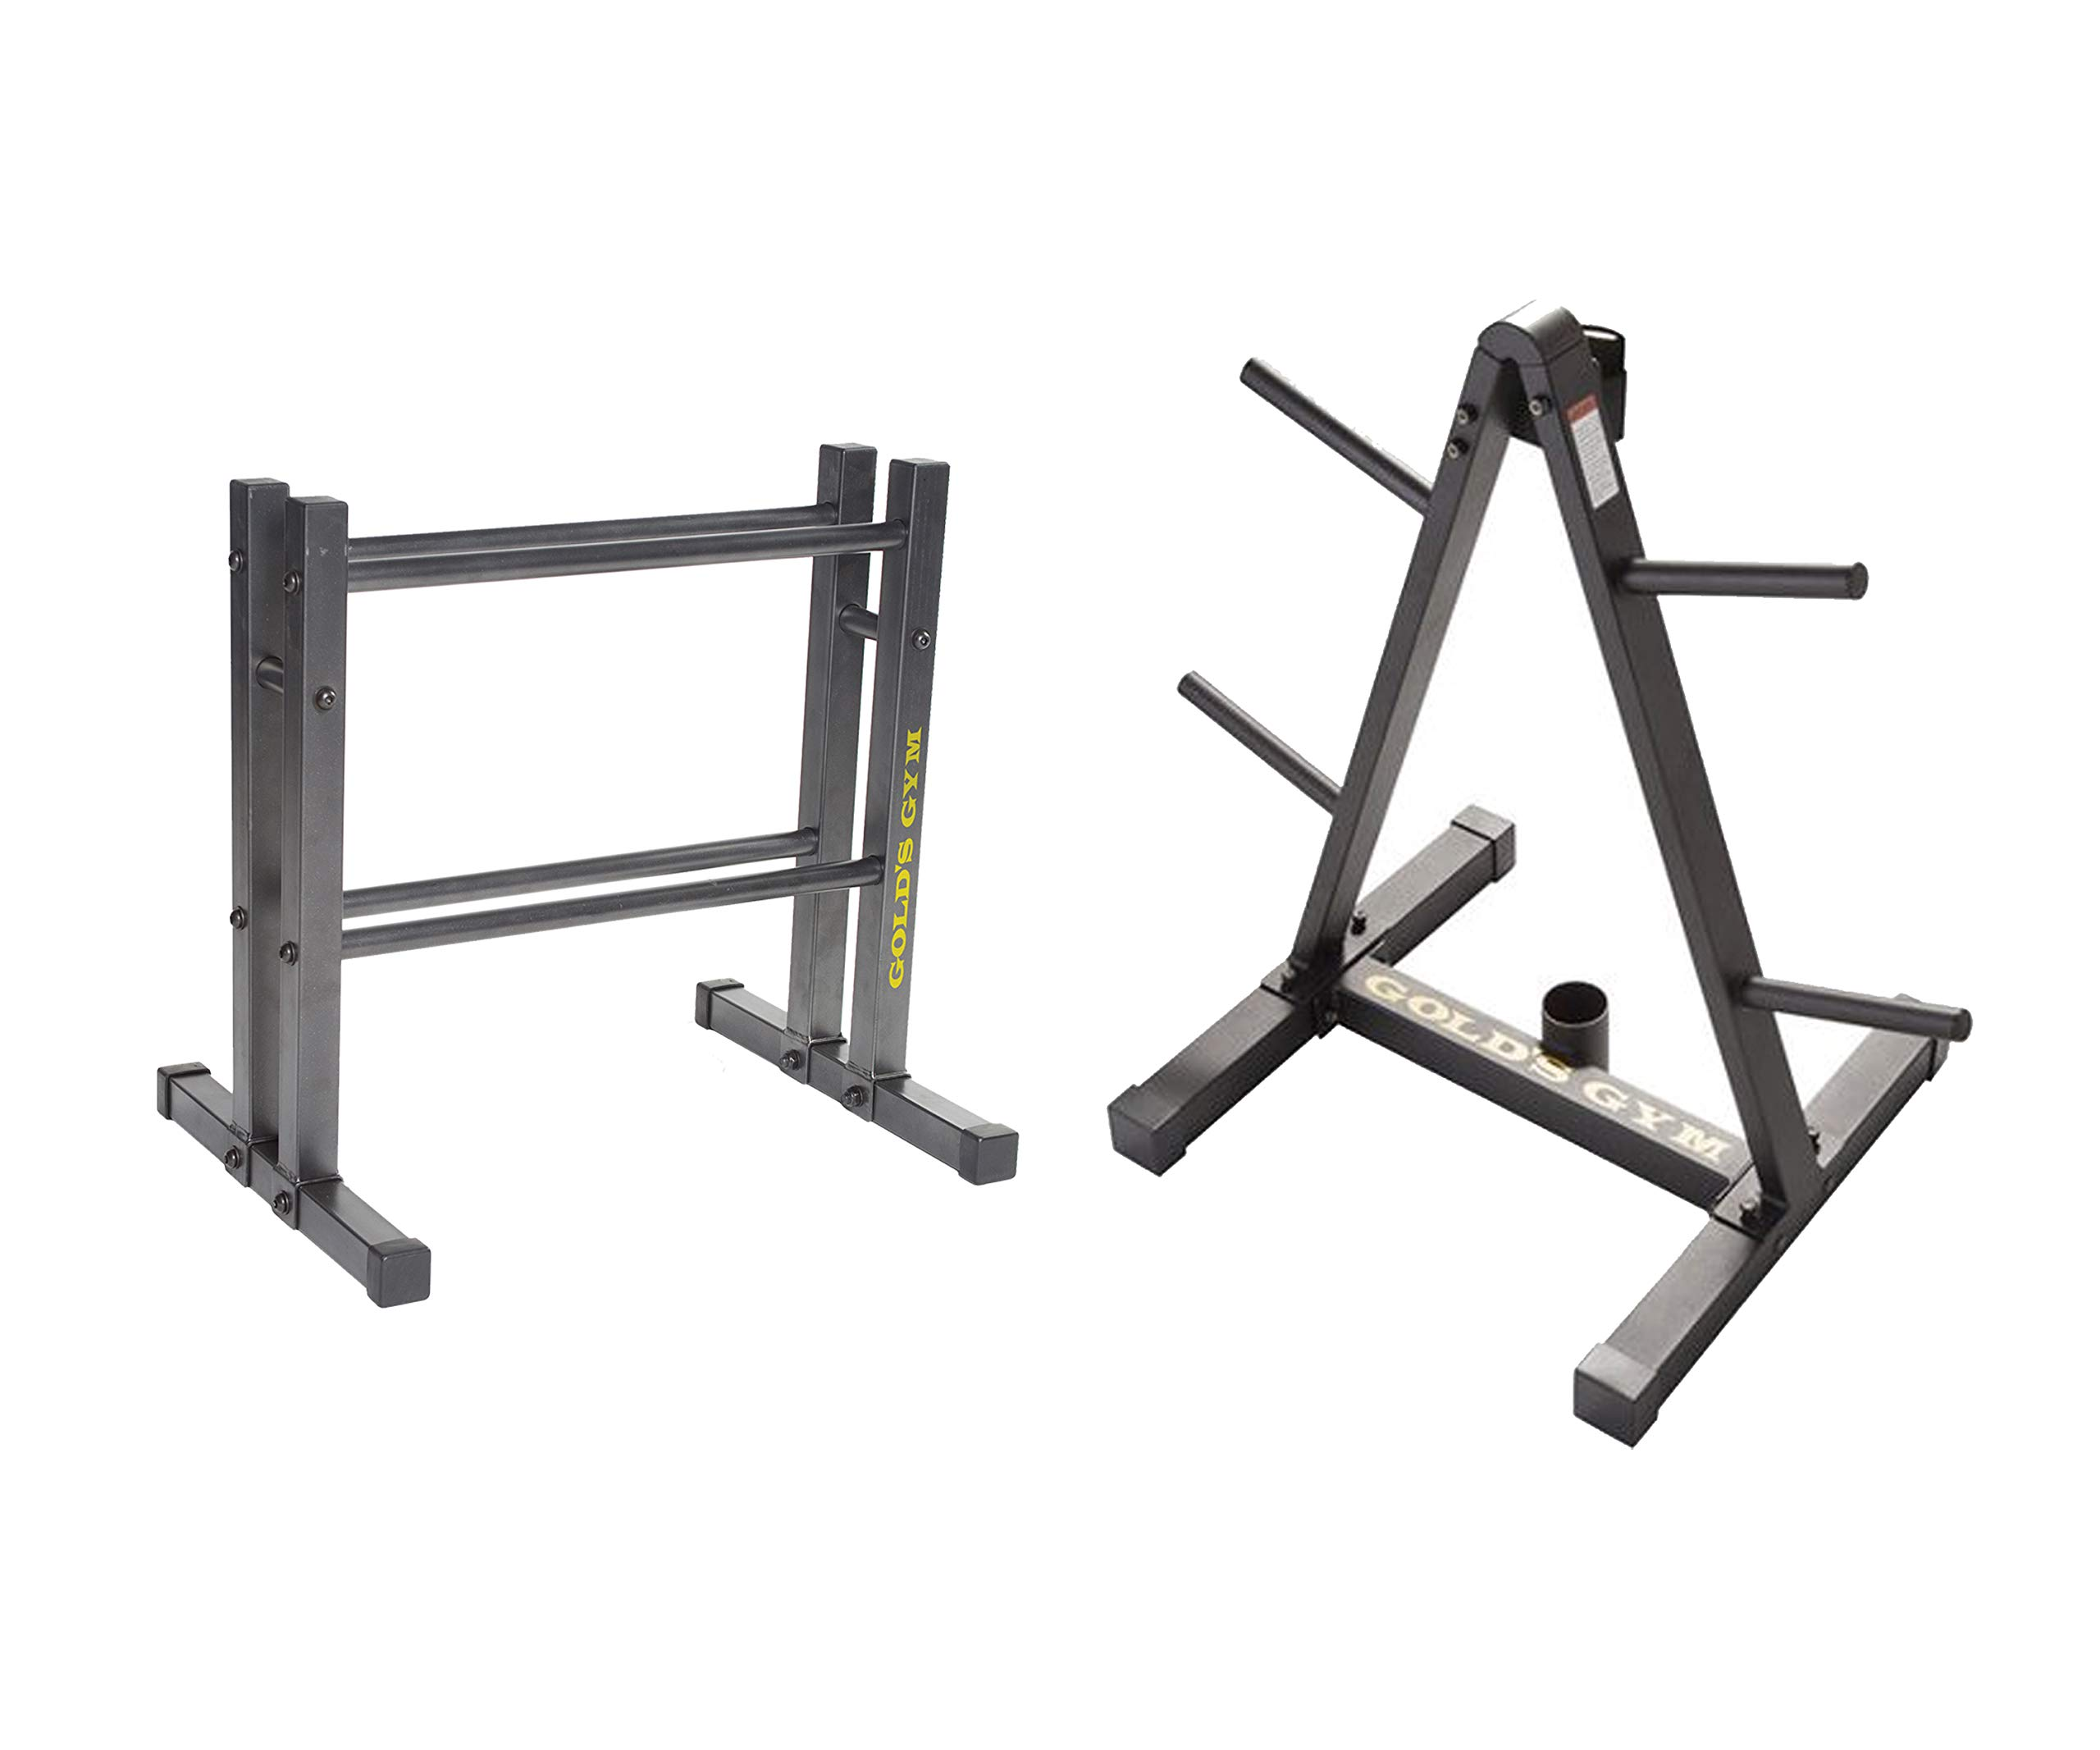 Golds Gym 24'' Utility Rack Bundle Weight Plate and Barbell Storage Rack with Compact Design